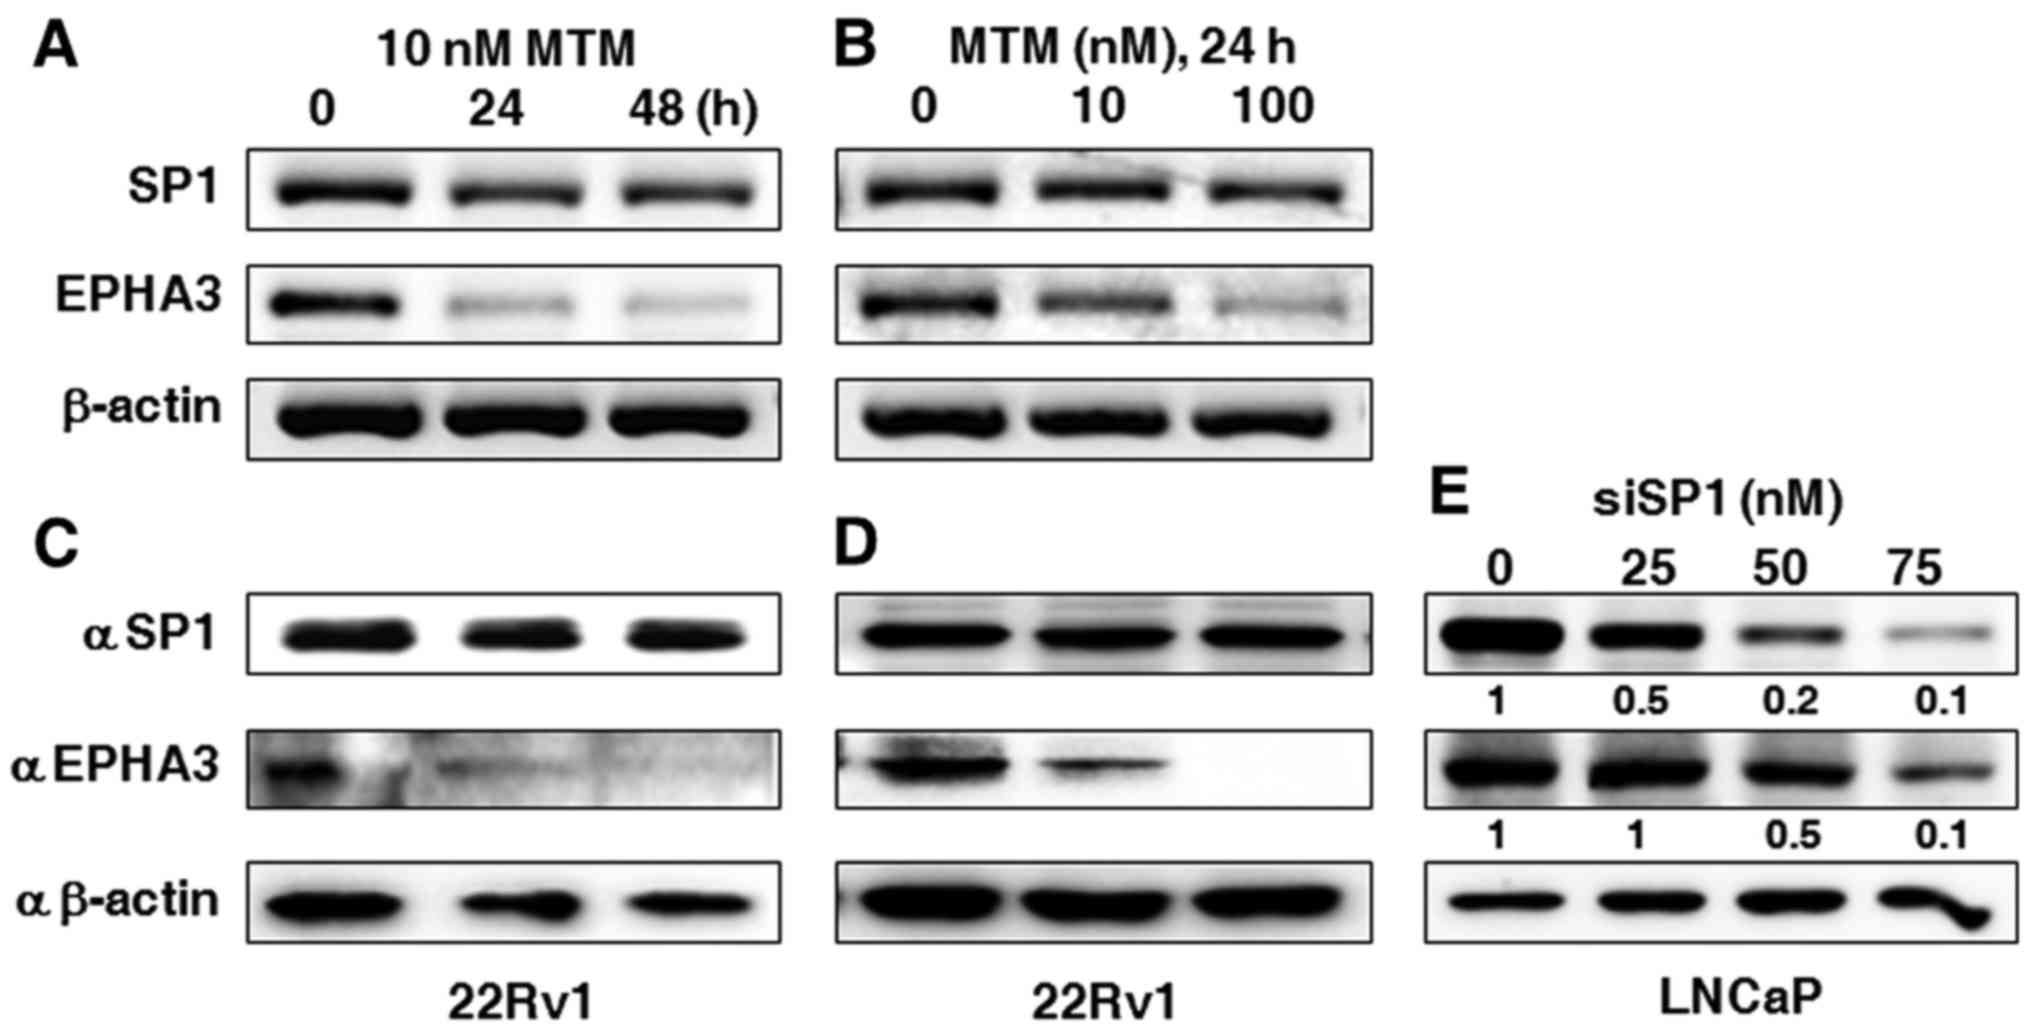 Androgen Receptor Induces Epha3 Expression By Interacting With Temperature Controller From Mtm Scientific Inc The 22rv1 Cells Were Treated Indicated Concentrations Of For 24 Or 48 H A And B Rt Pcr C D Western Blotting Performed To